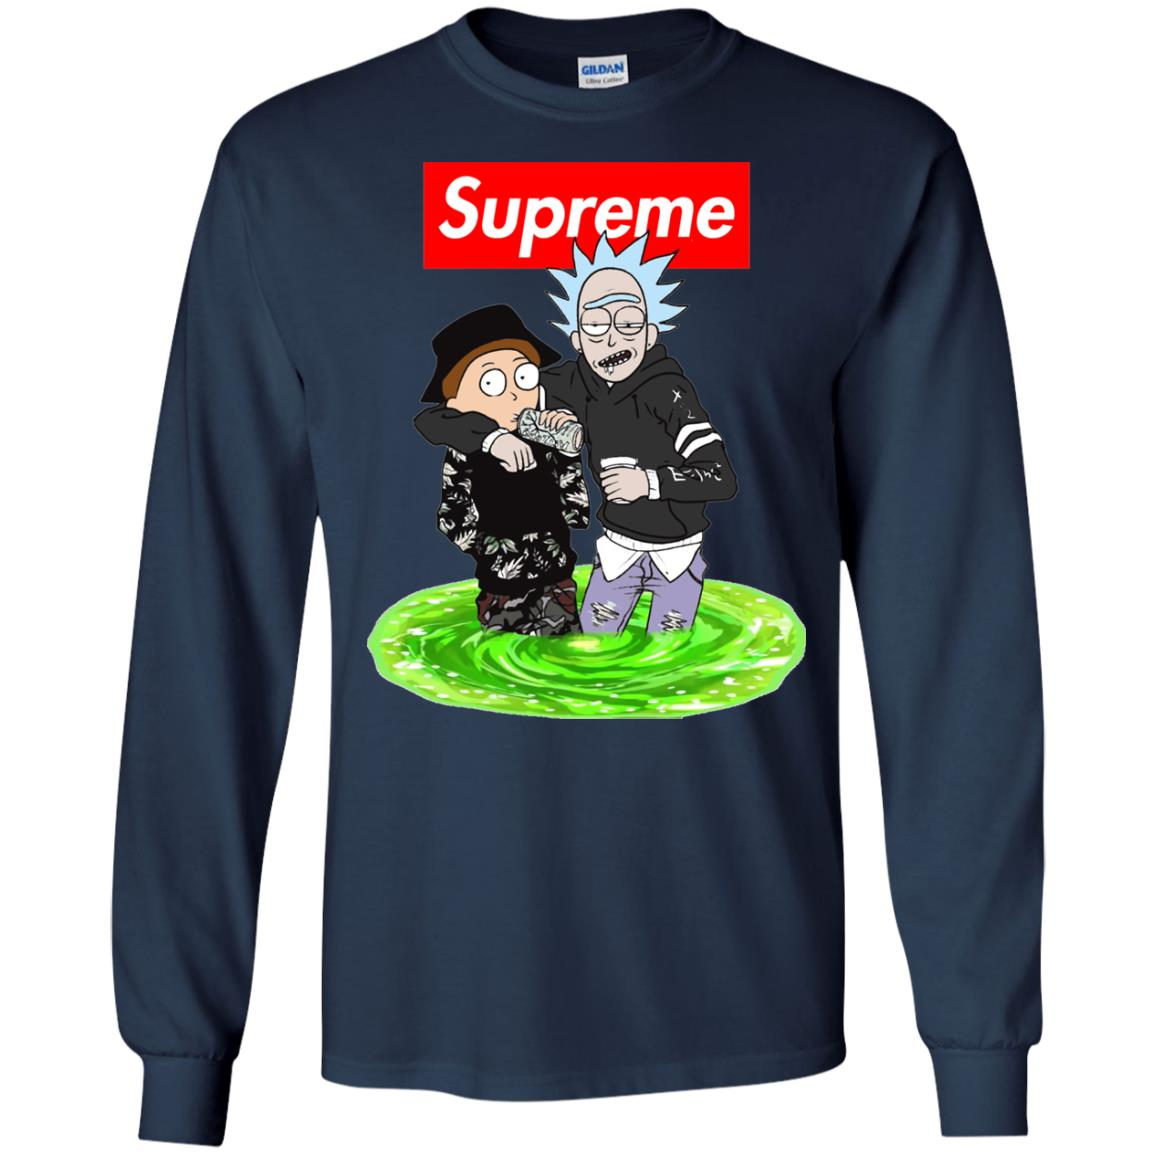 image 2744 - Supreme style Rick and Morty shirt & sweater